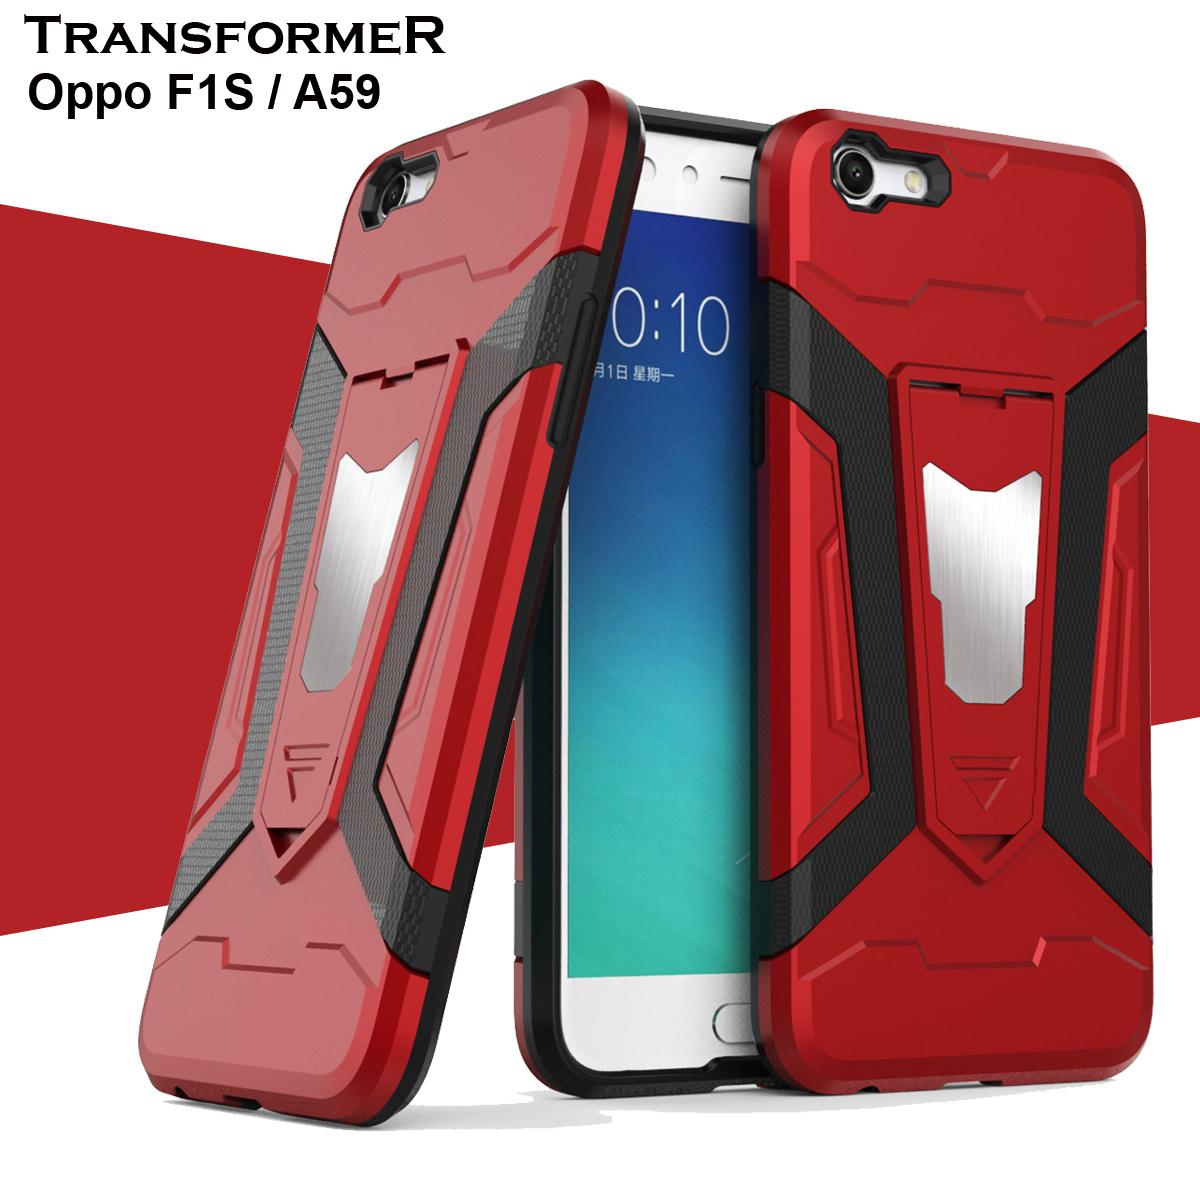 Case Iron Man for Oppo F1S / OPPO F1 S / Oppo A59 Robot Transformer Ironman